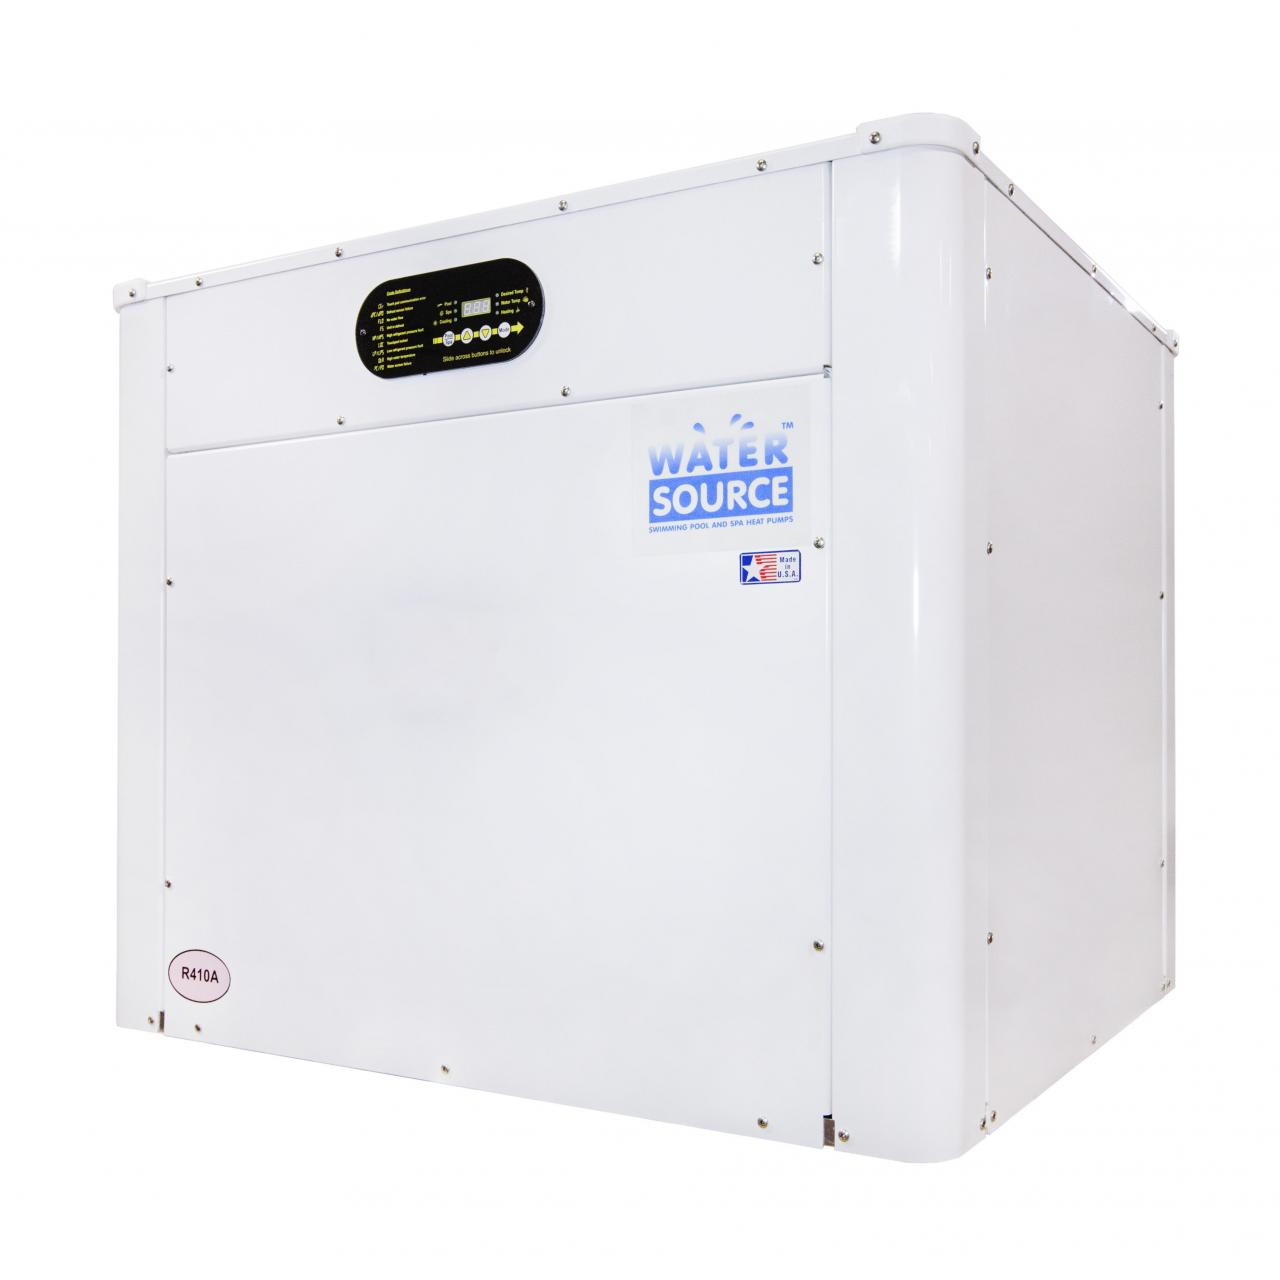 AquaCal Geothermal Water Source Pool Heating Systems